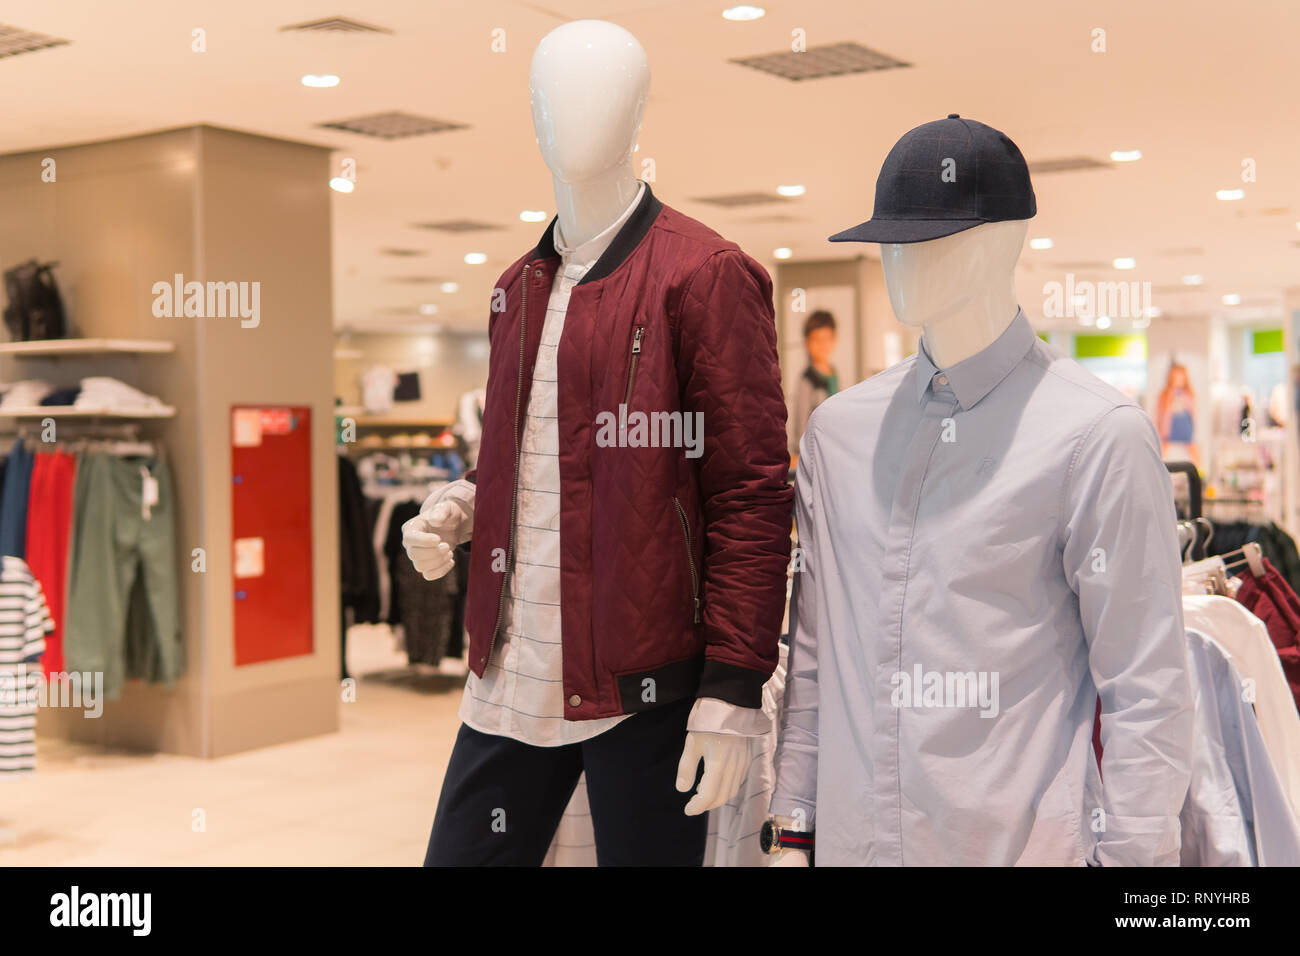 af8ec217071 Male mannequins in red jacket, gray shirt and black baseball cap. Fashion  store interior on background. Clothing shop, nobody